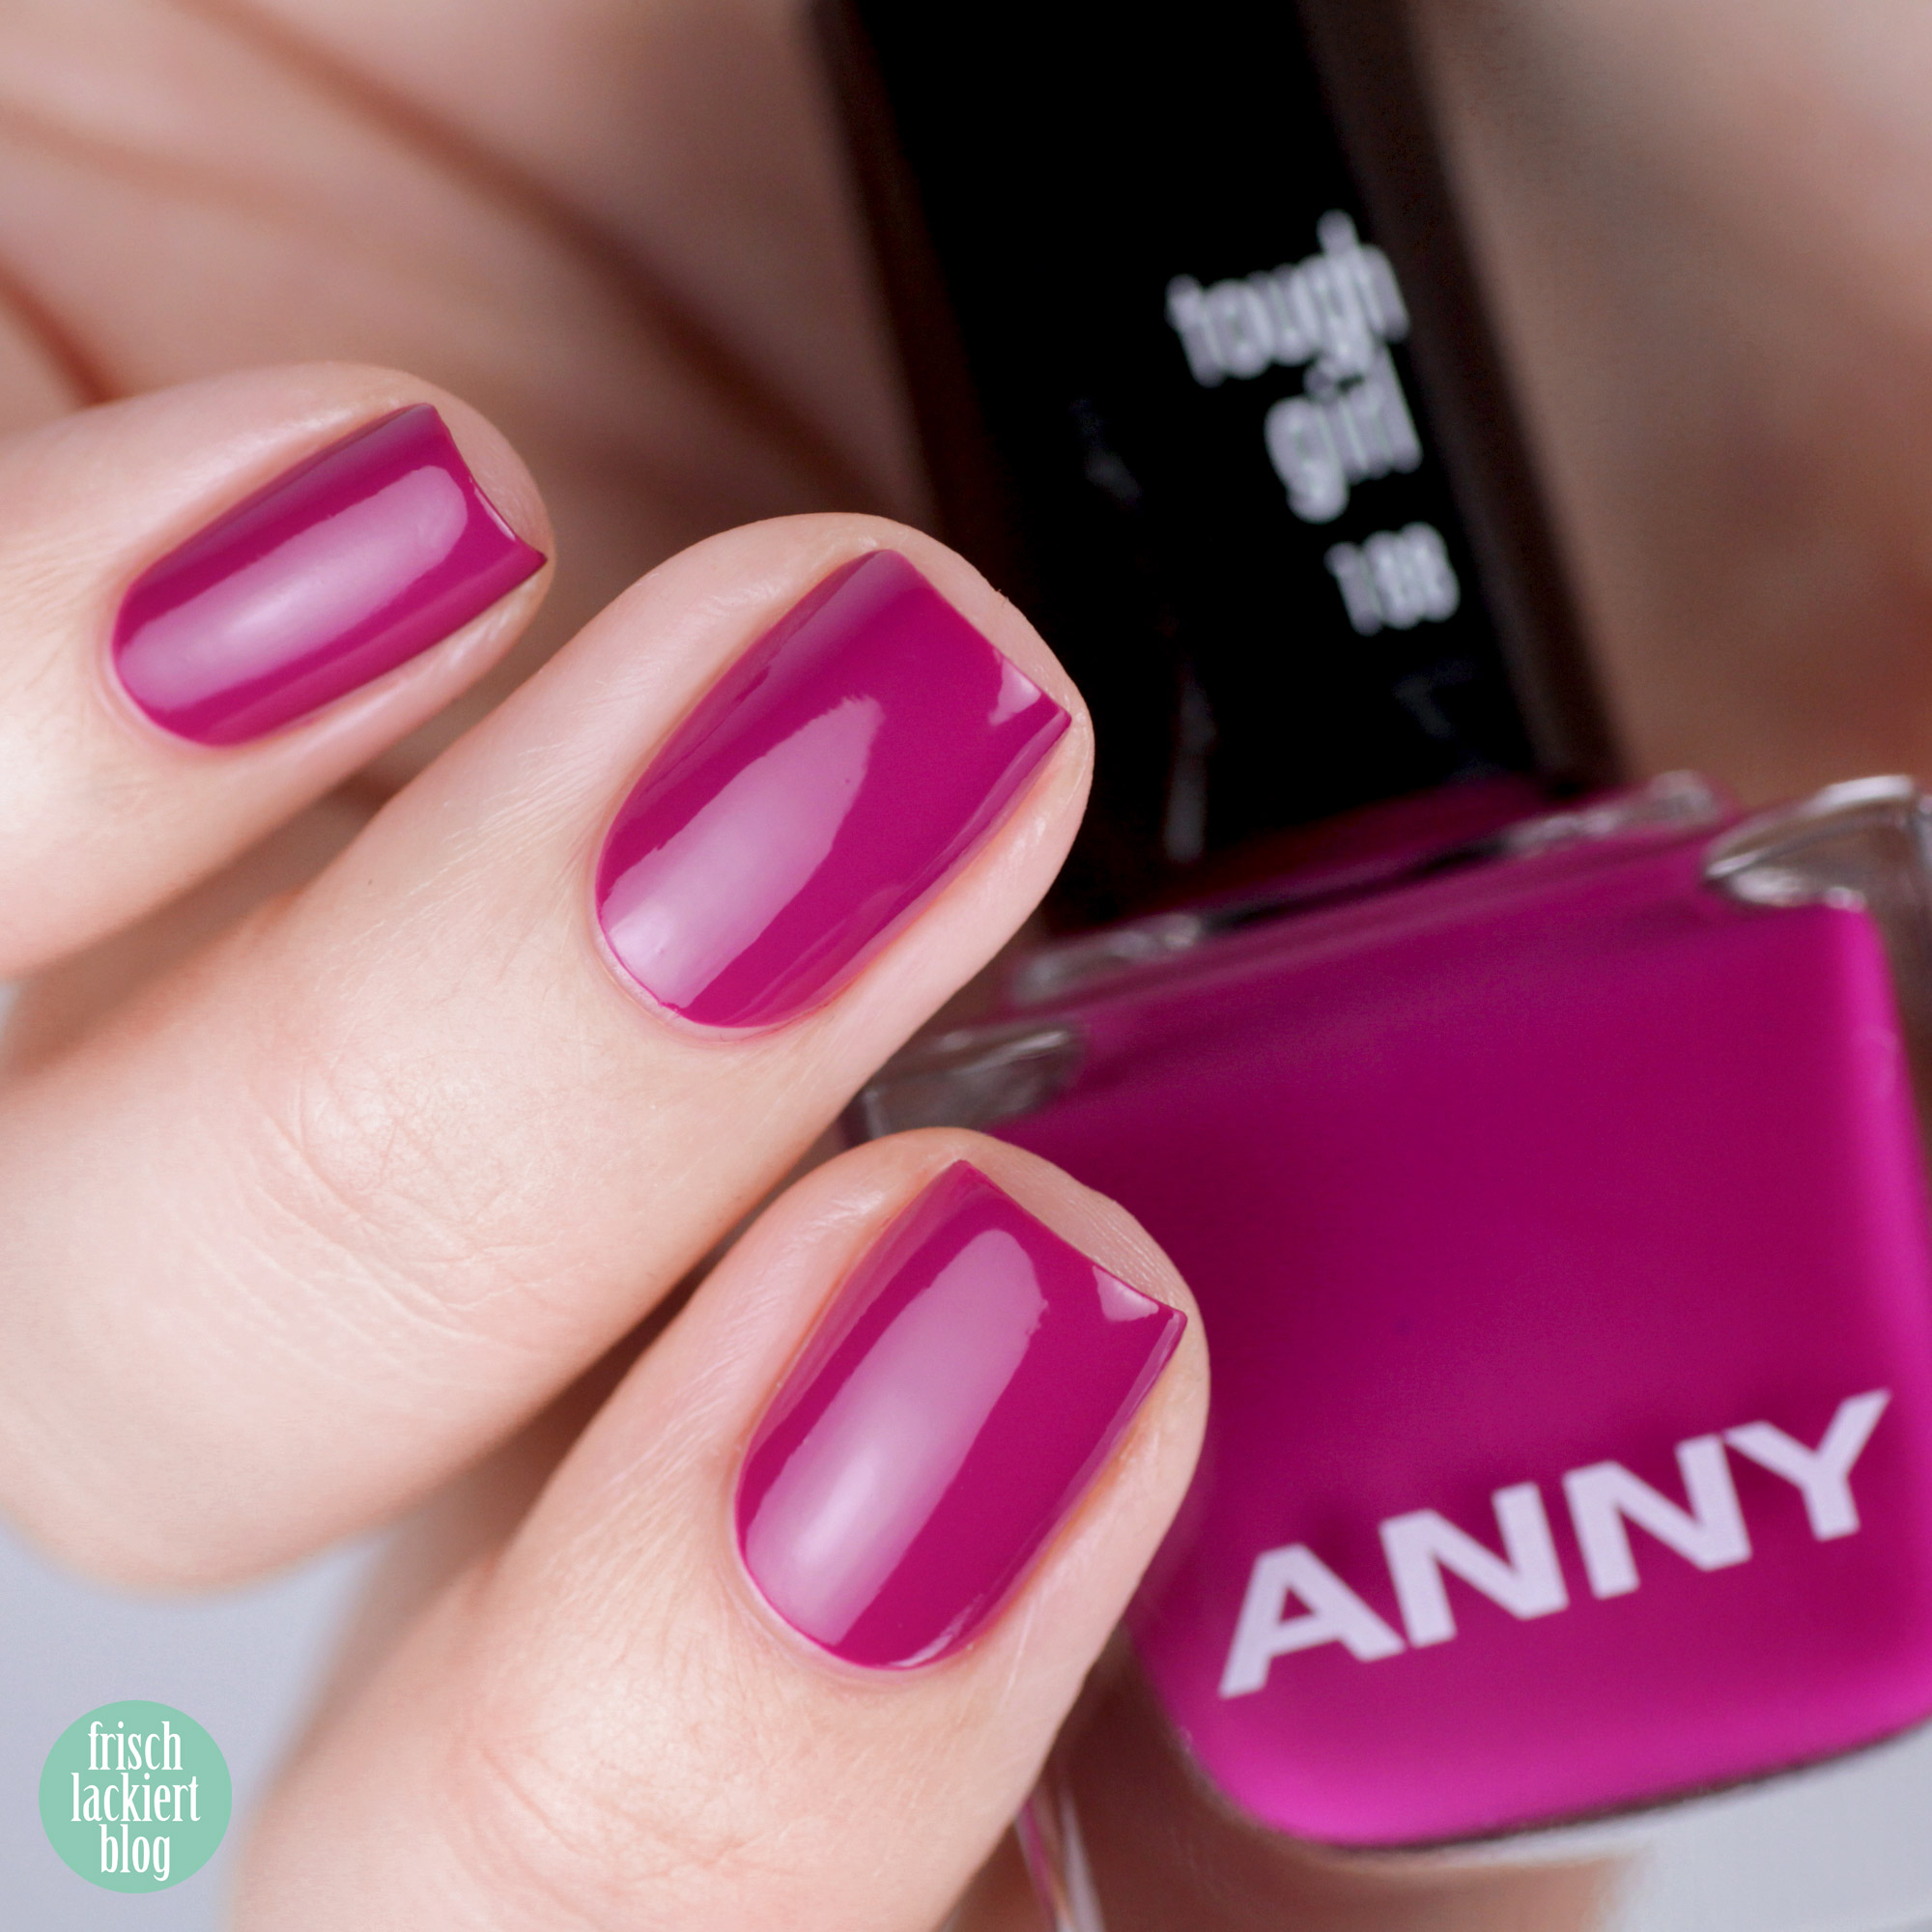 ANNY Holo it´s ANNY Nagellack Kollektion - tough girl – swatch by frischlackiert